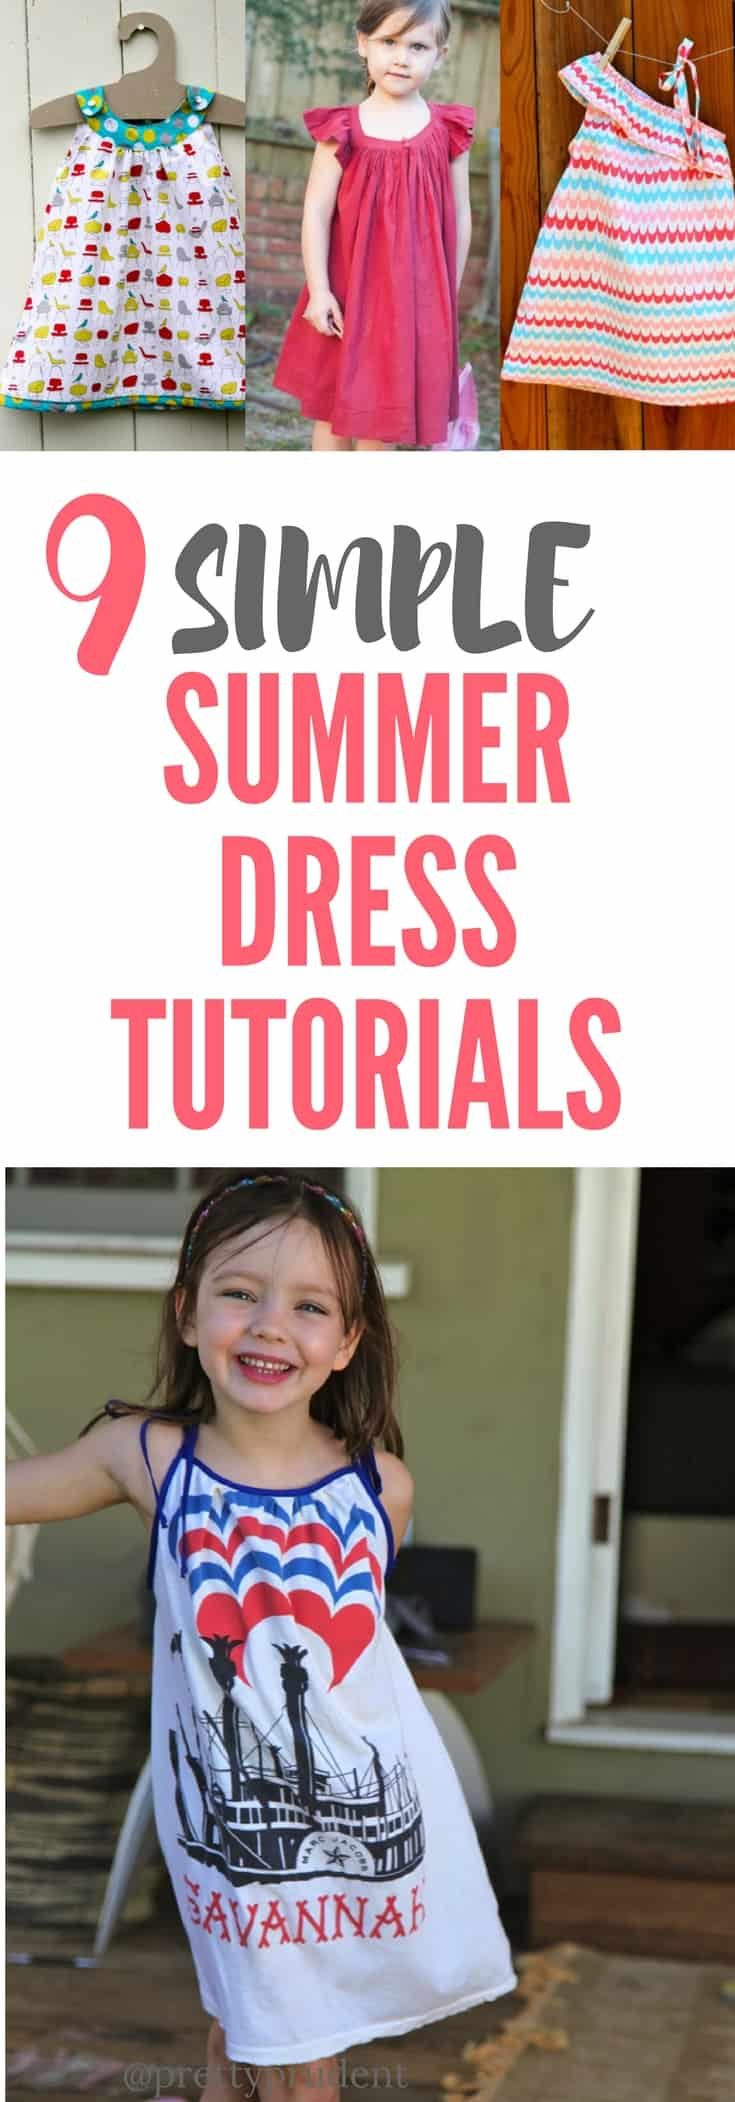 Simple Summer Dress Tutorials